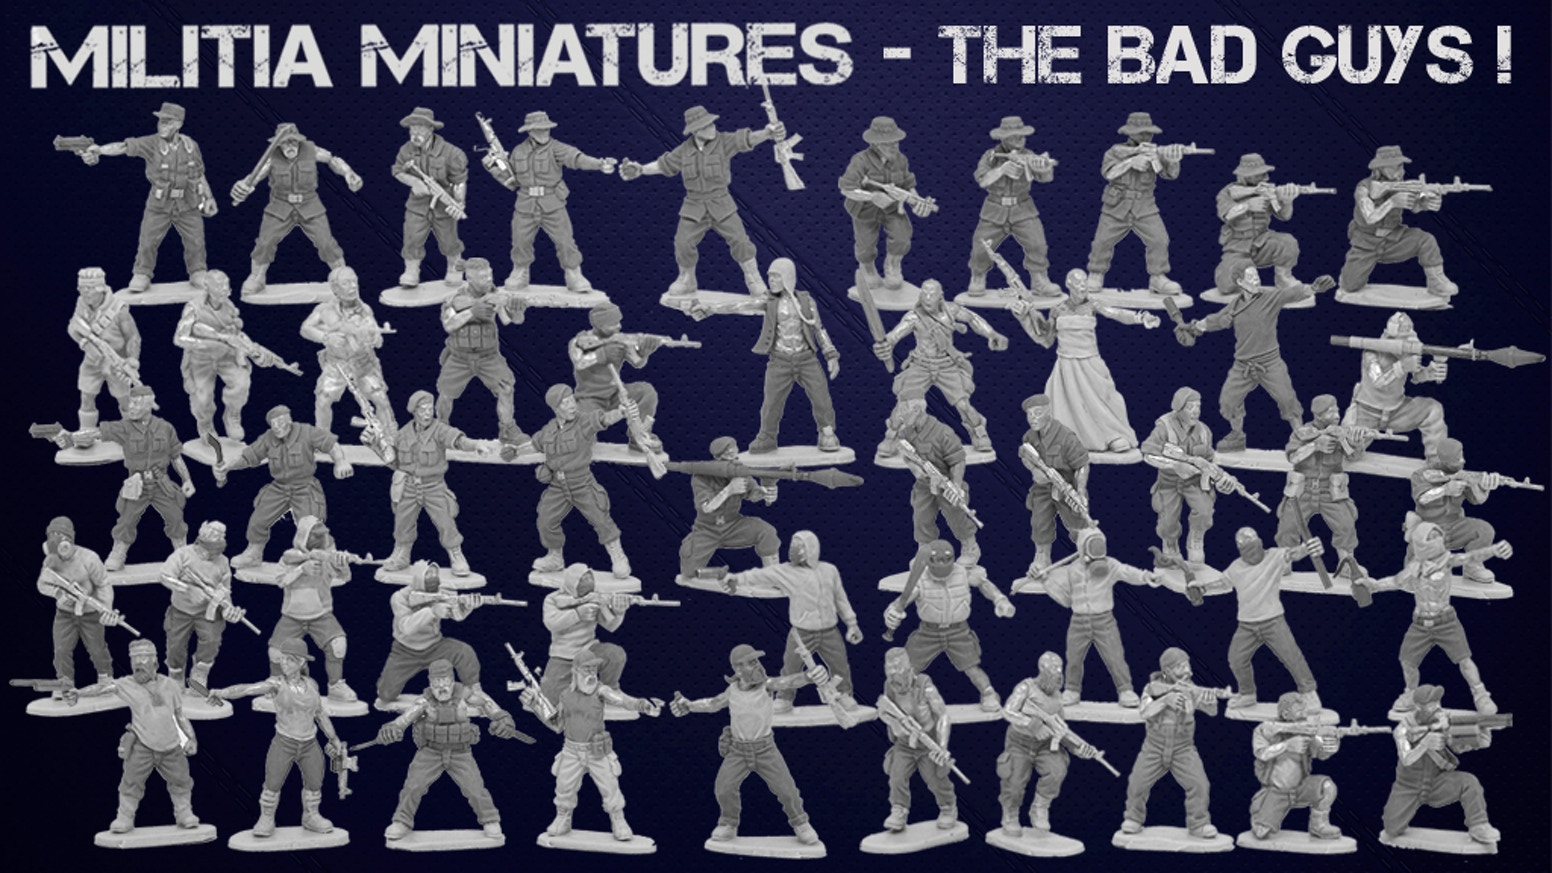 Militia Miniatures - The Bad Guys! by Leon Pengilley